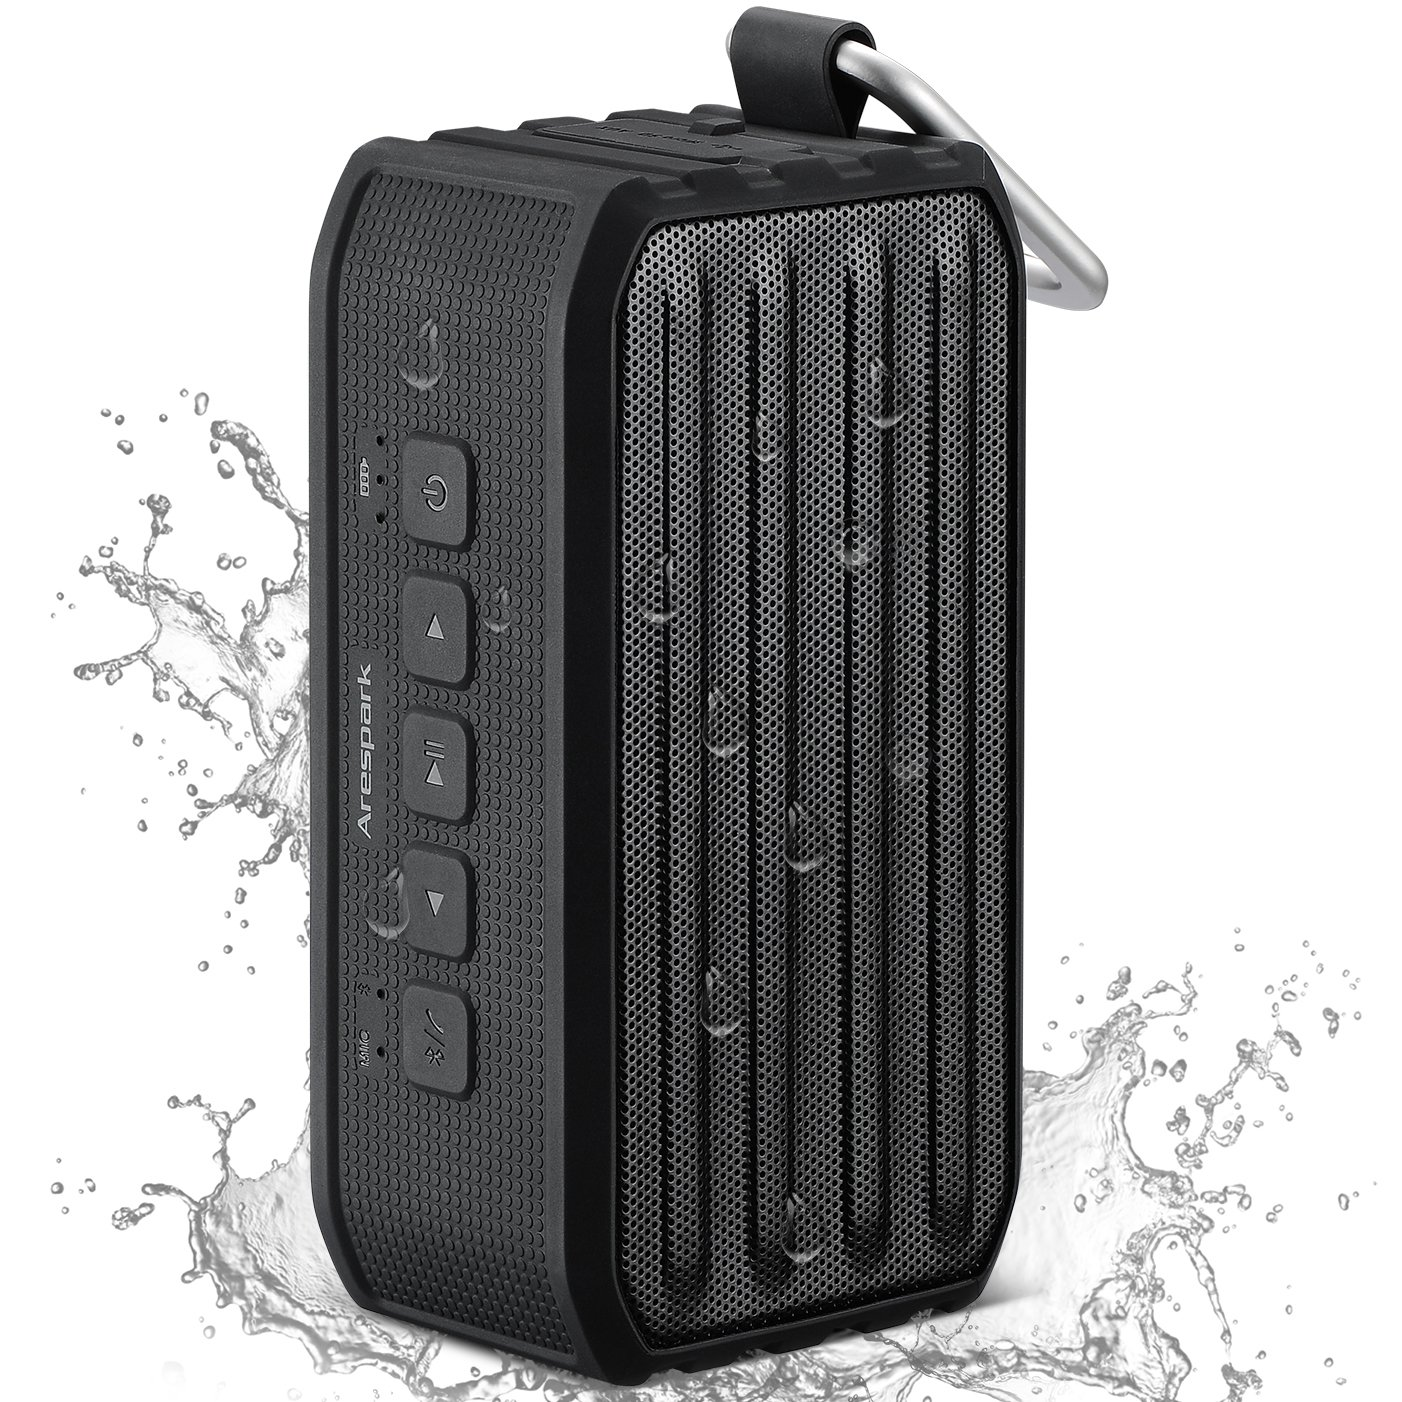 Arespark Outdoor Bluetooth 4.0 Speaker